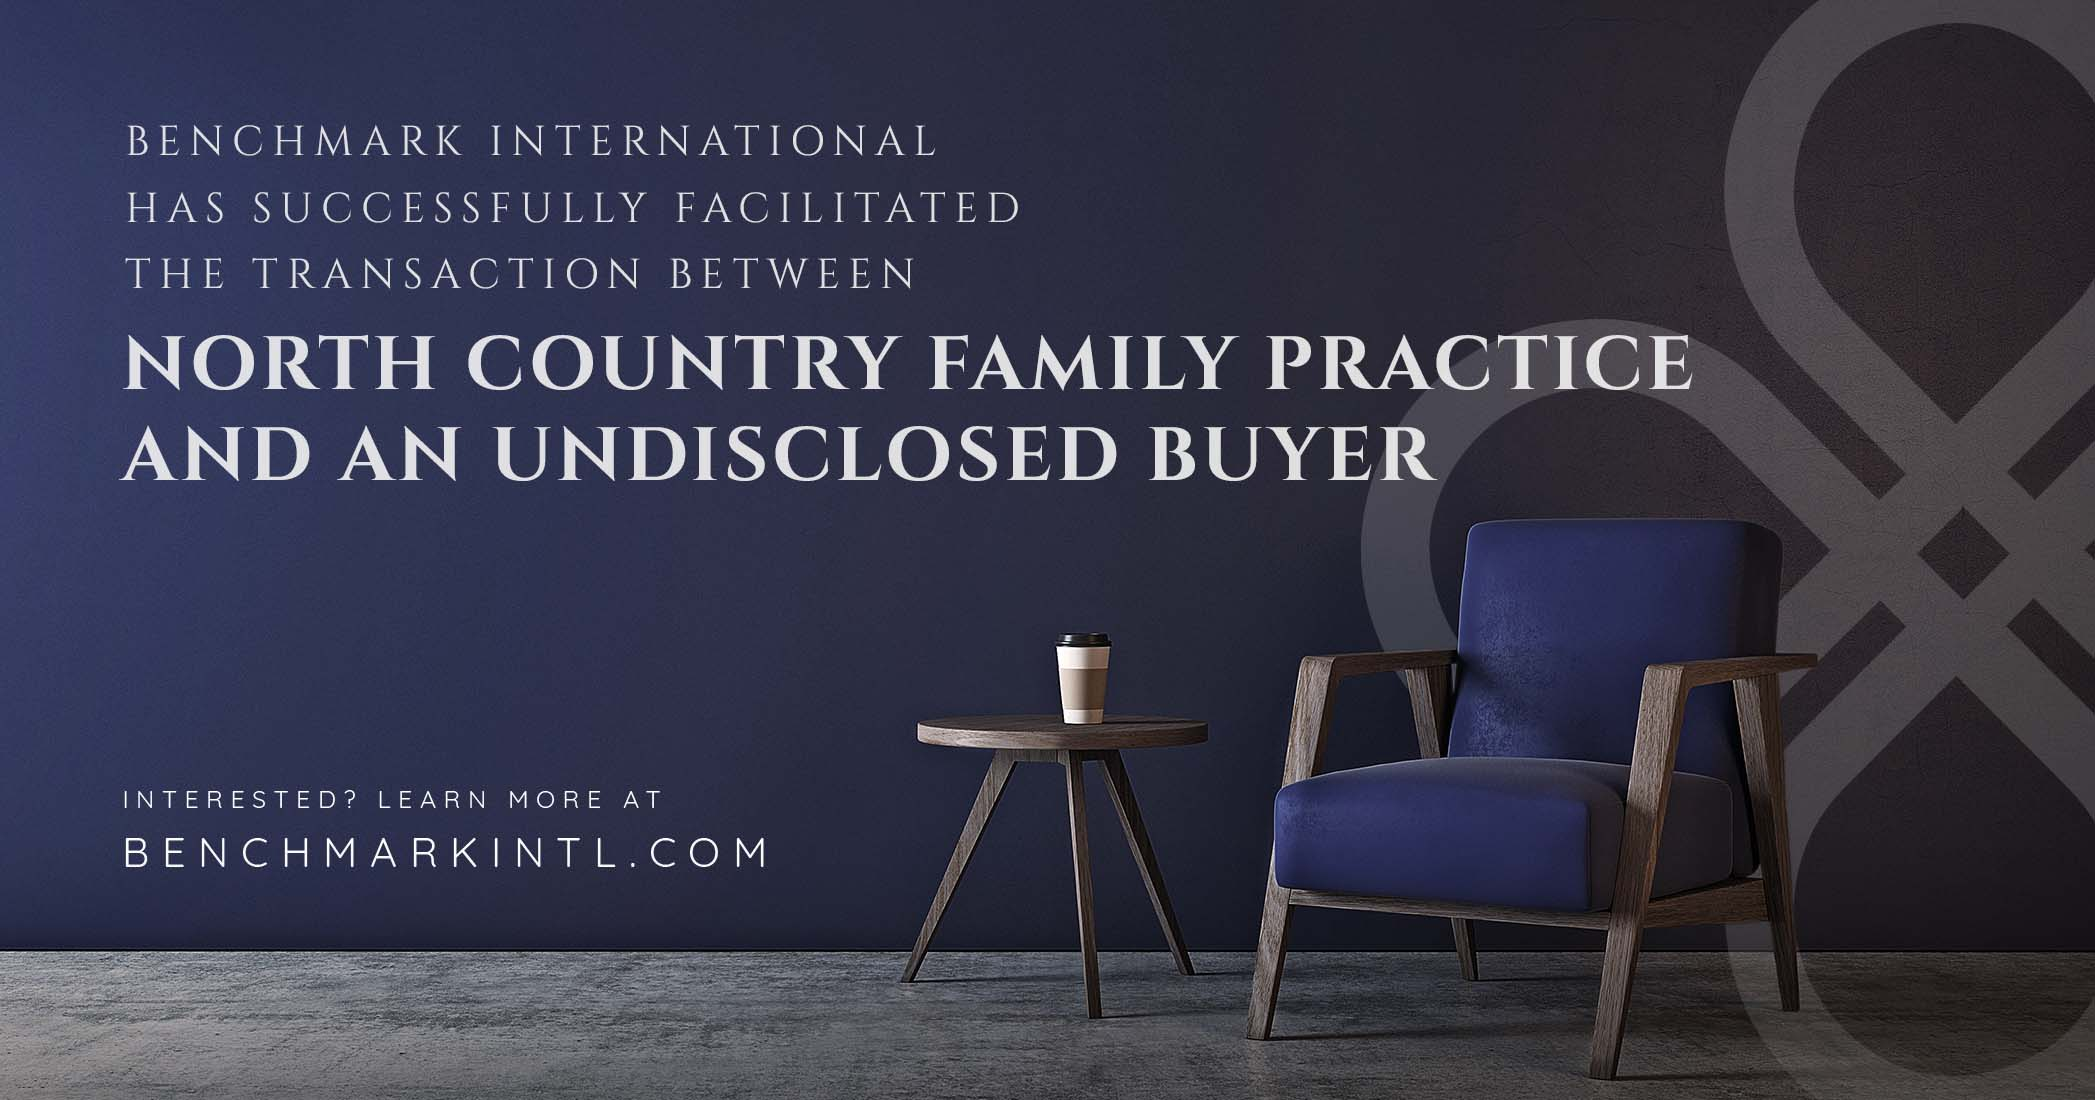 Benchmark International Successfully Facilitated the Transaction Between North Country Family Practice and an Undisclosed Buyer